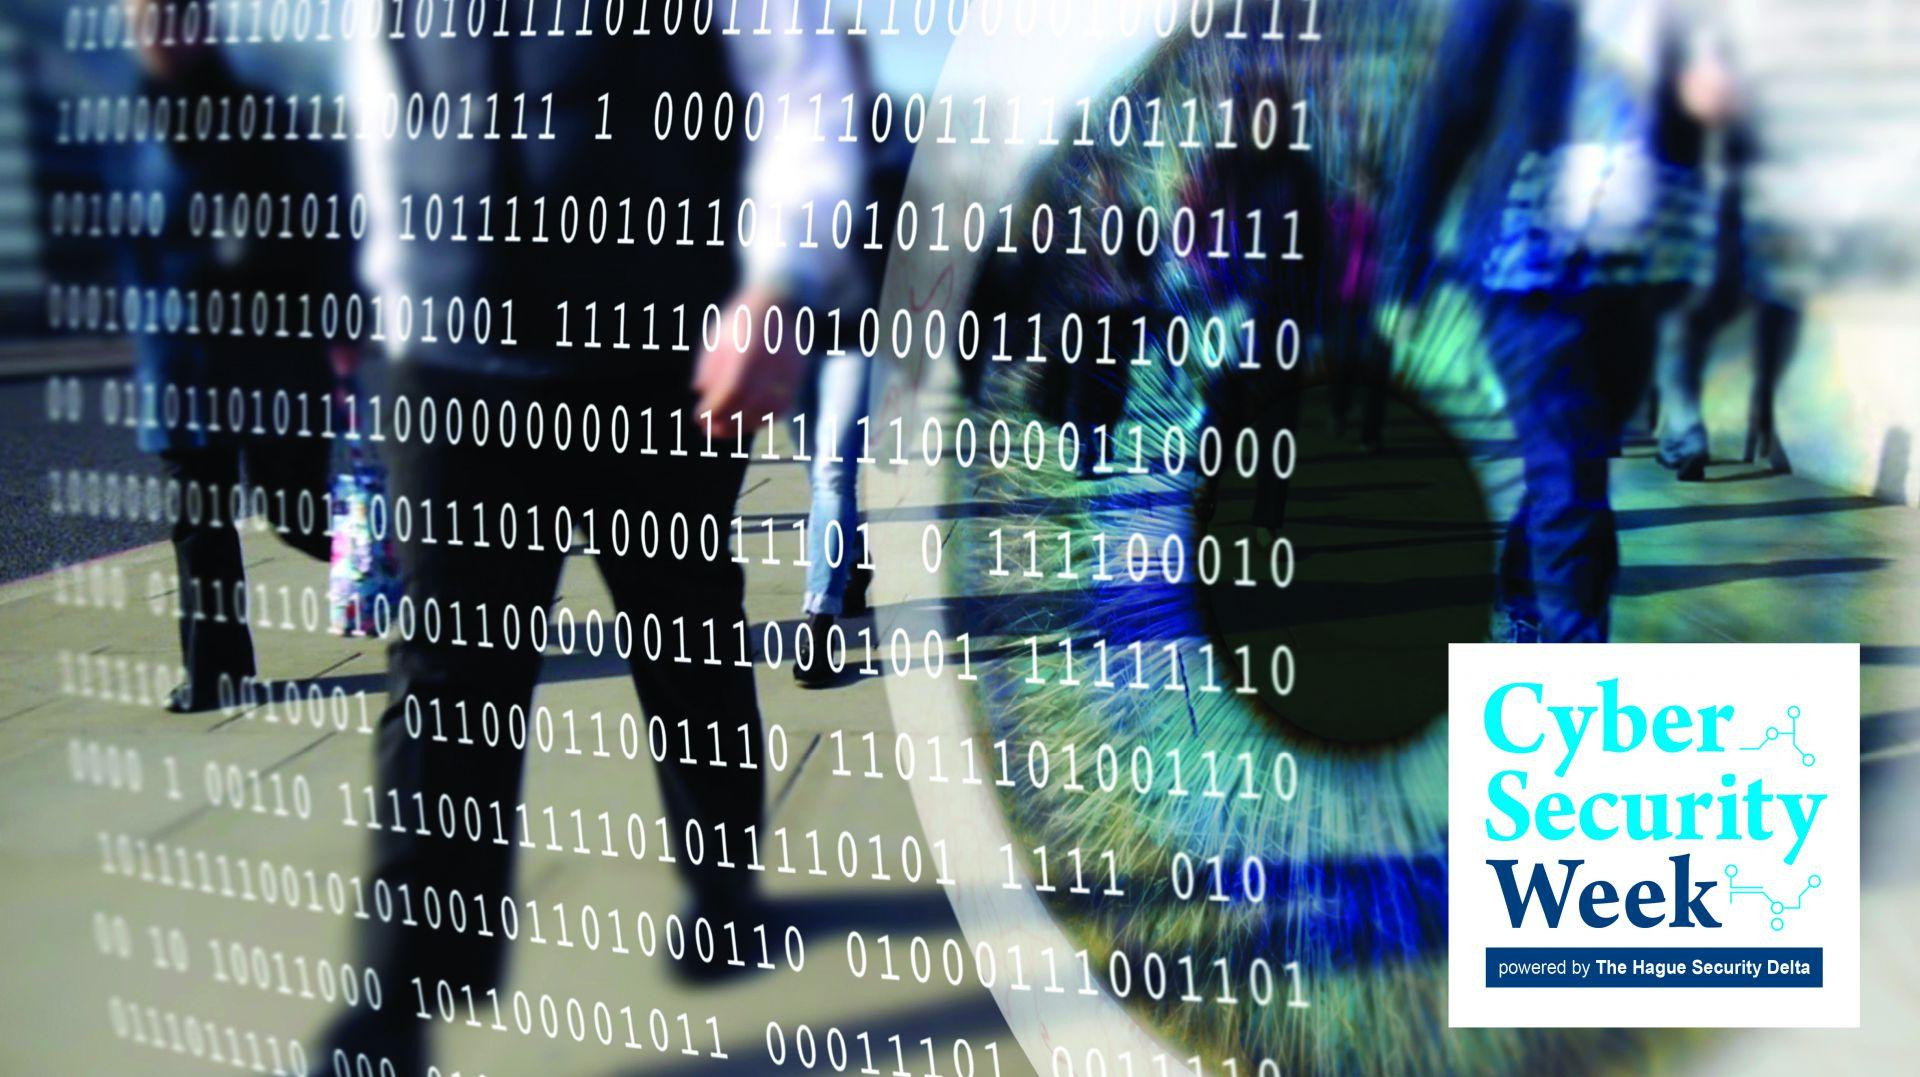 Call for Participation: Cyber Security Week 2017 in The Hague